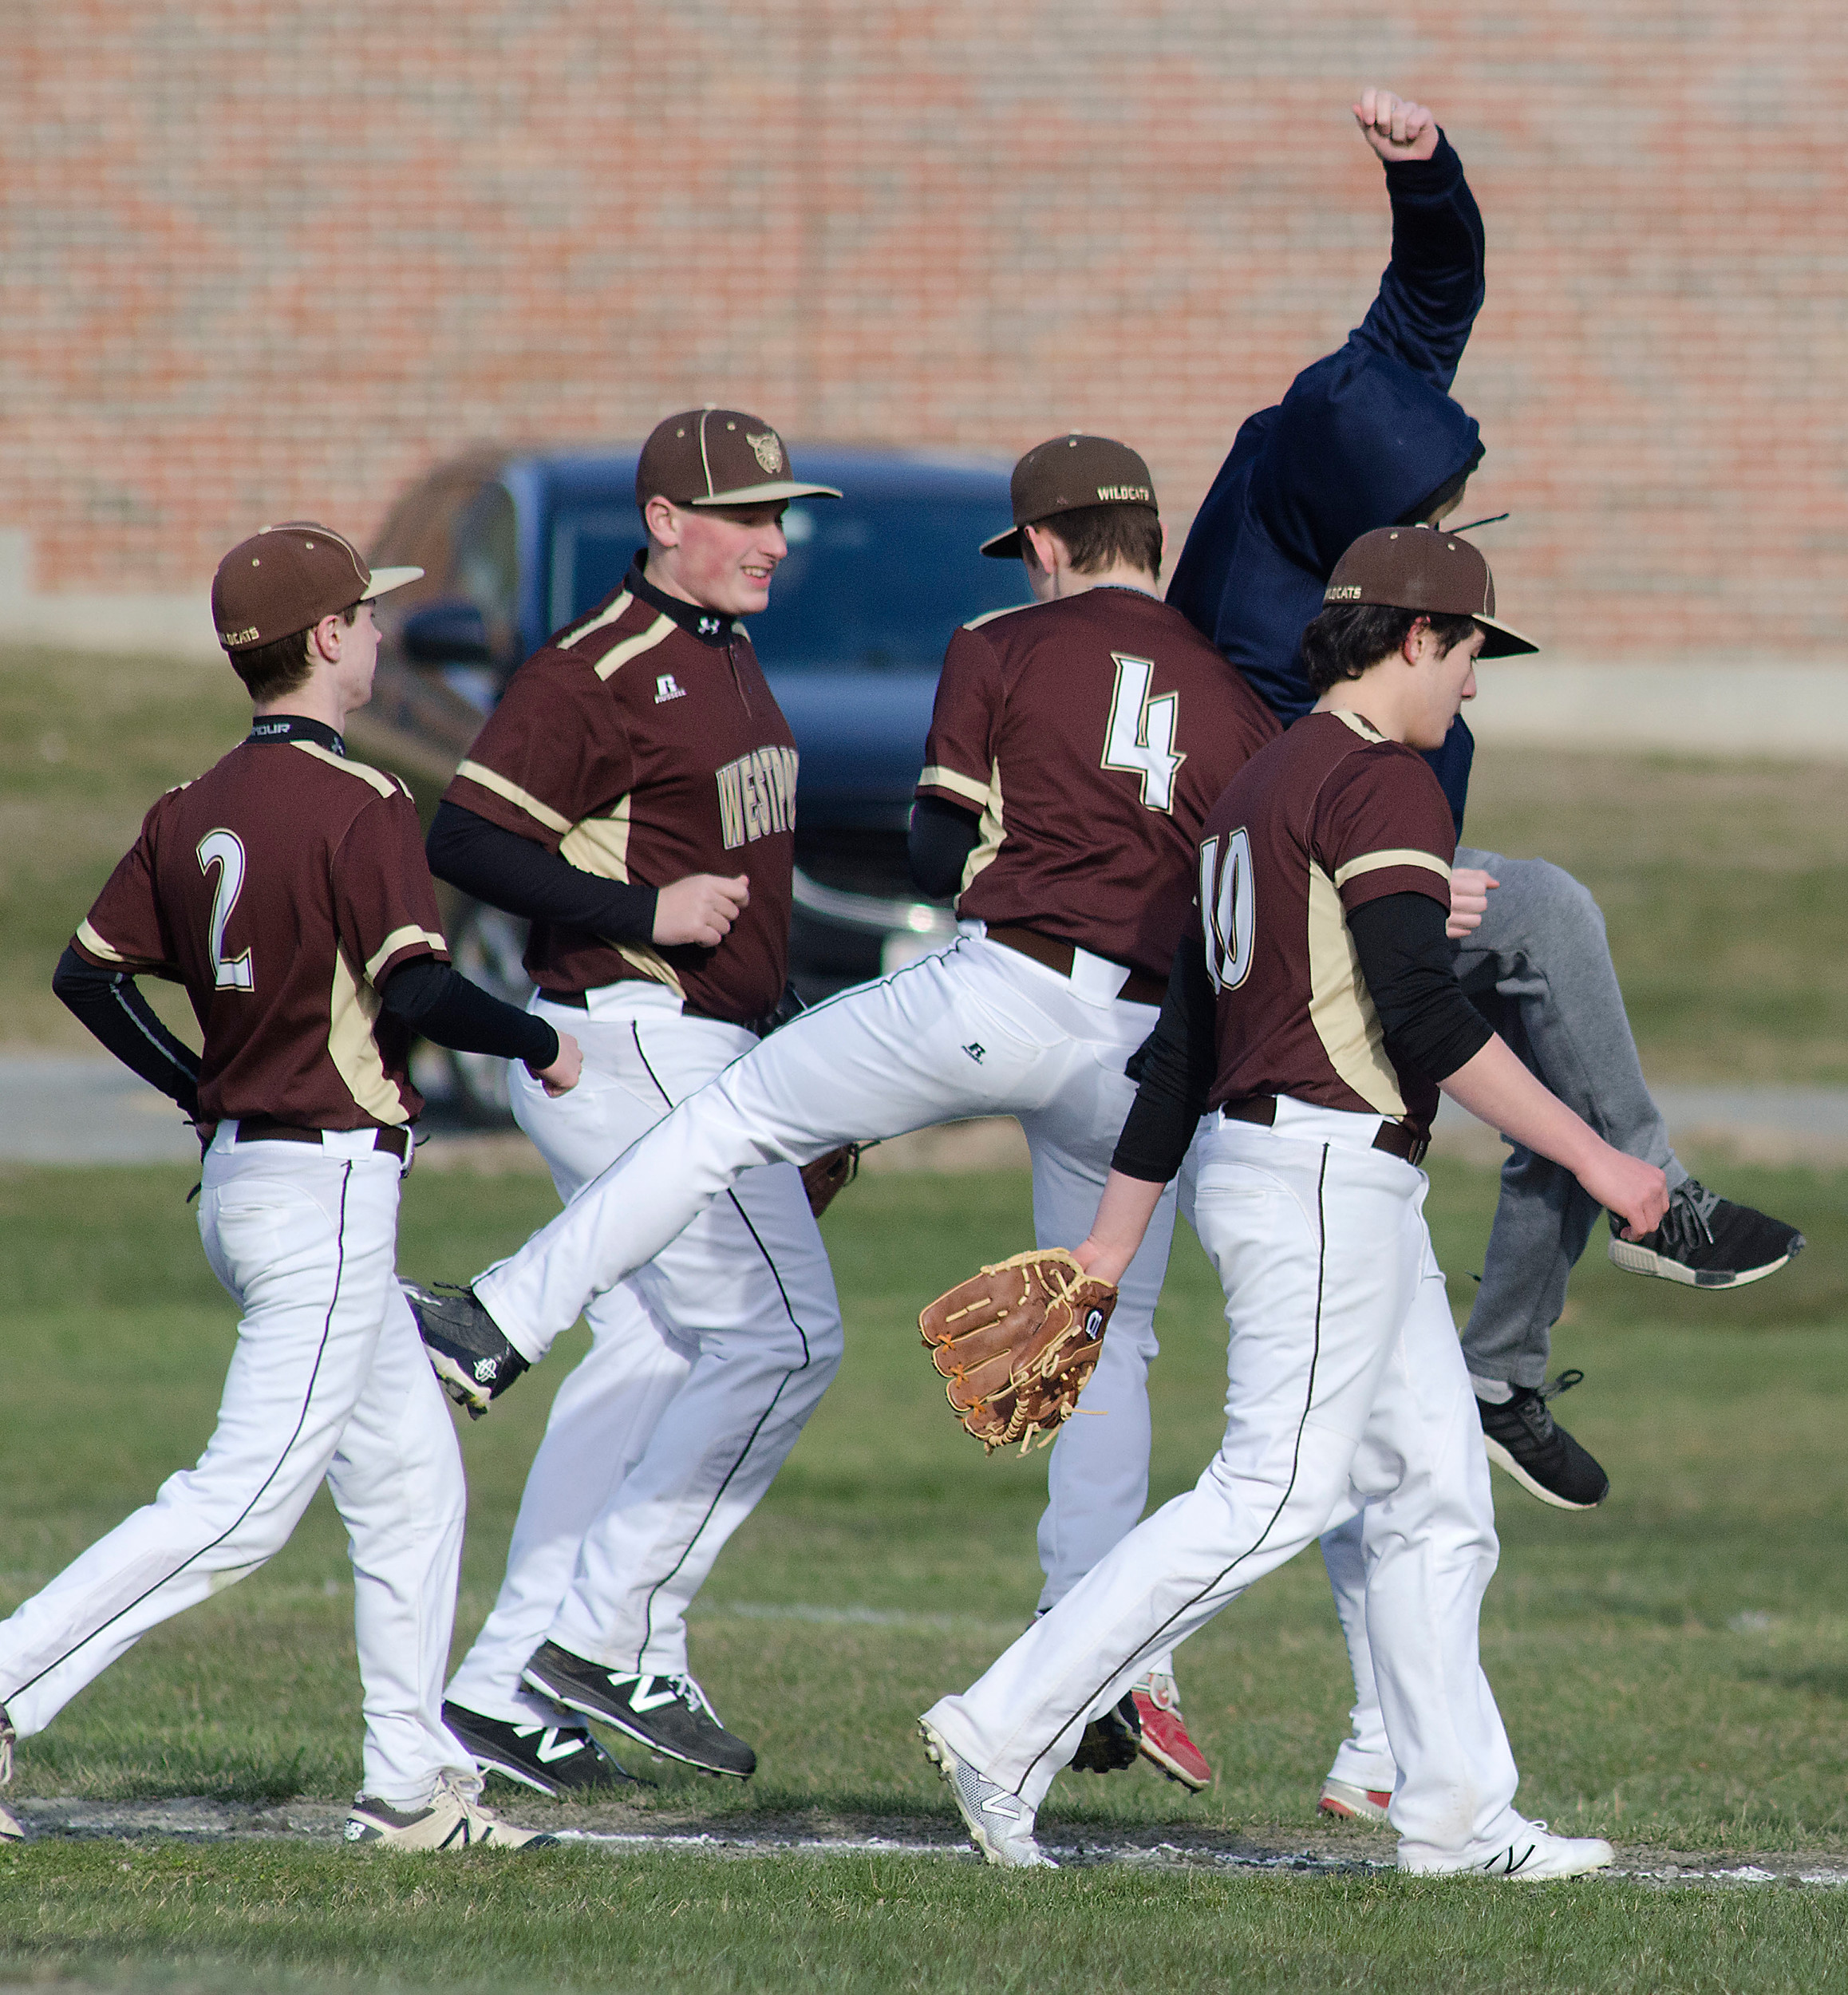 The team celebrates as they run off the field after Dawson Dorvais (4) made a great catch in the outfield to retire the side.